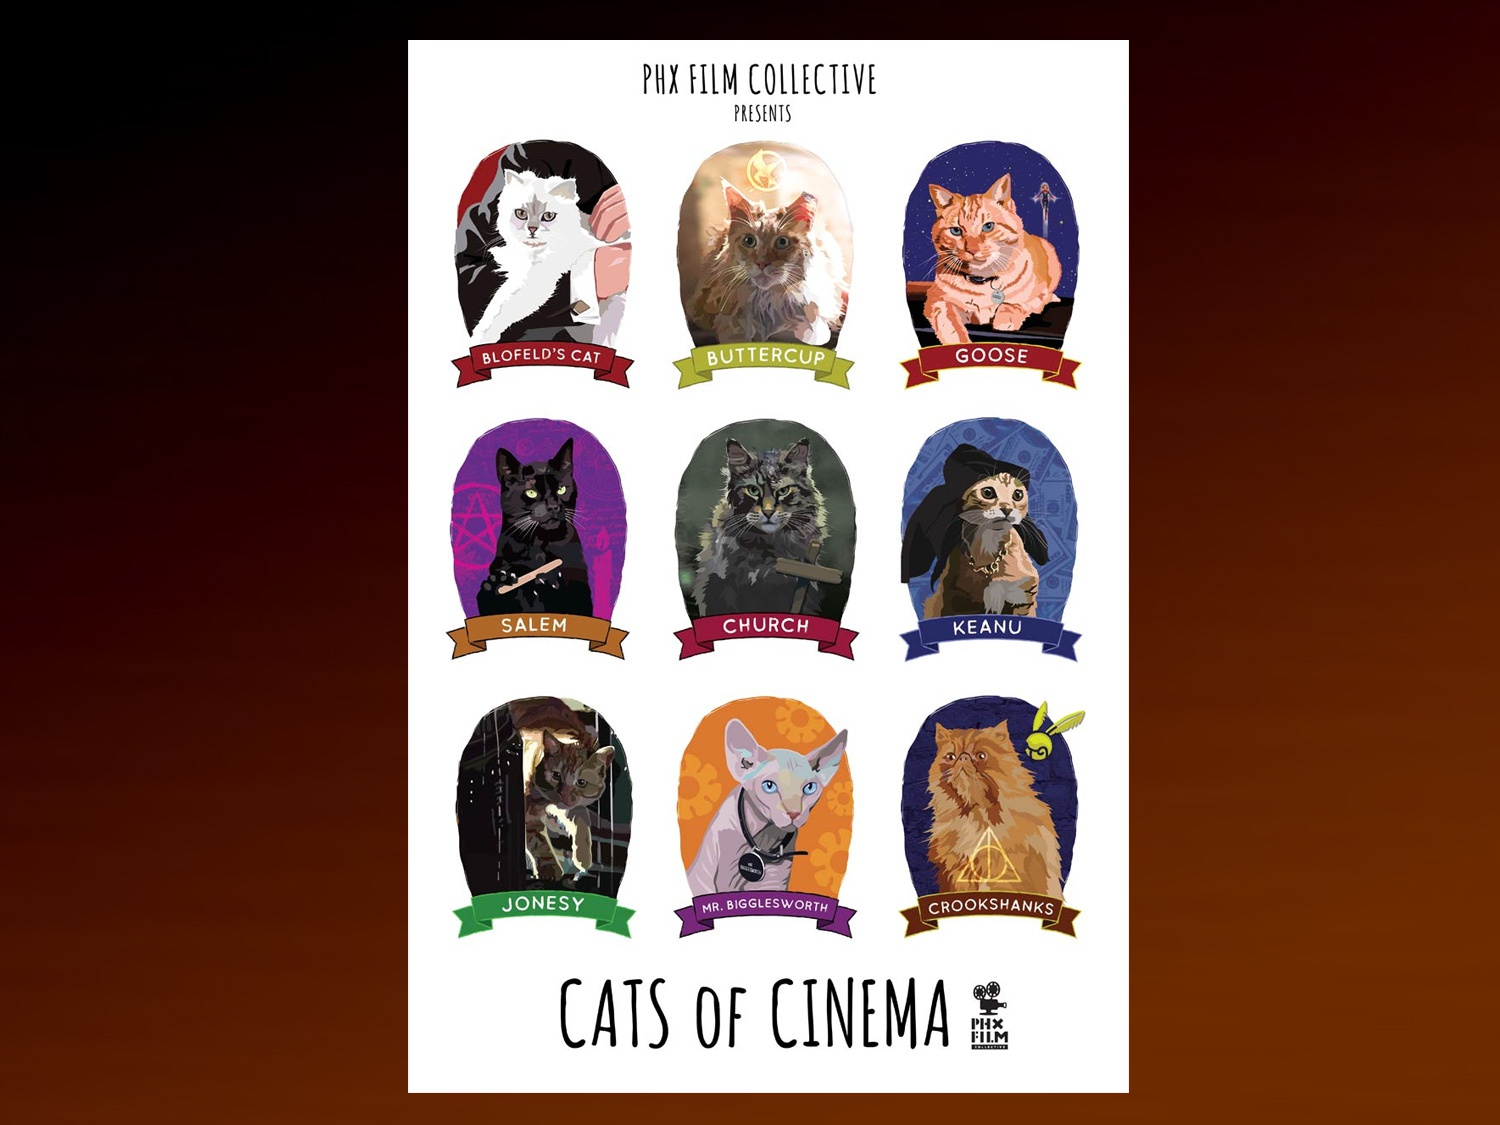 Cats Of Cinema poster by Chris Ayers Creative on Dribbble